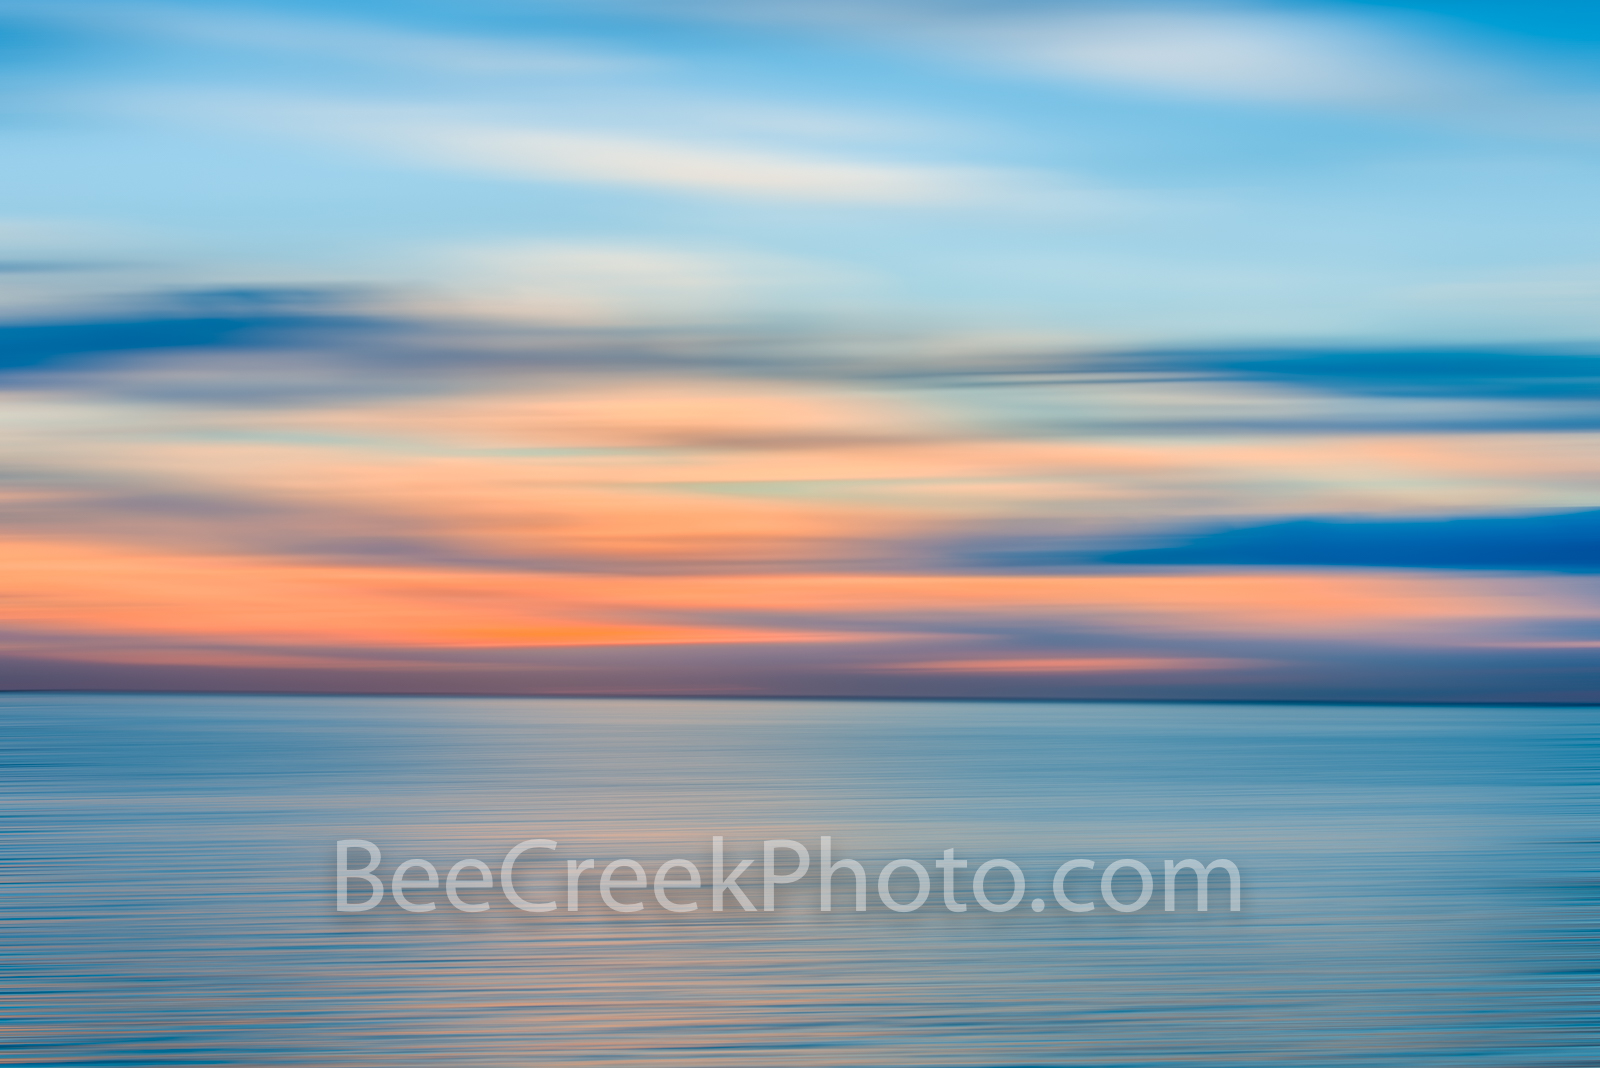 Blue Ocean Pastel - Sunset over ocean waves as a digital abstract with this long exposure effect. We capture this image and created...